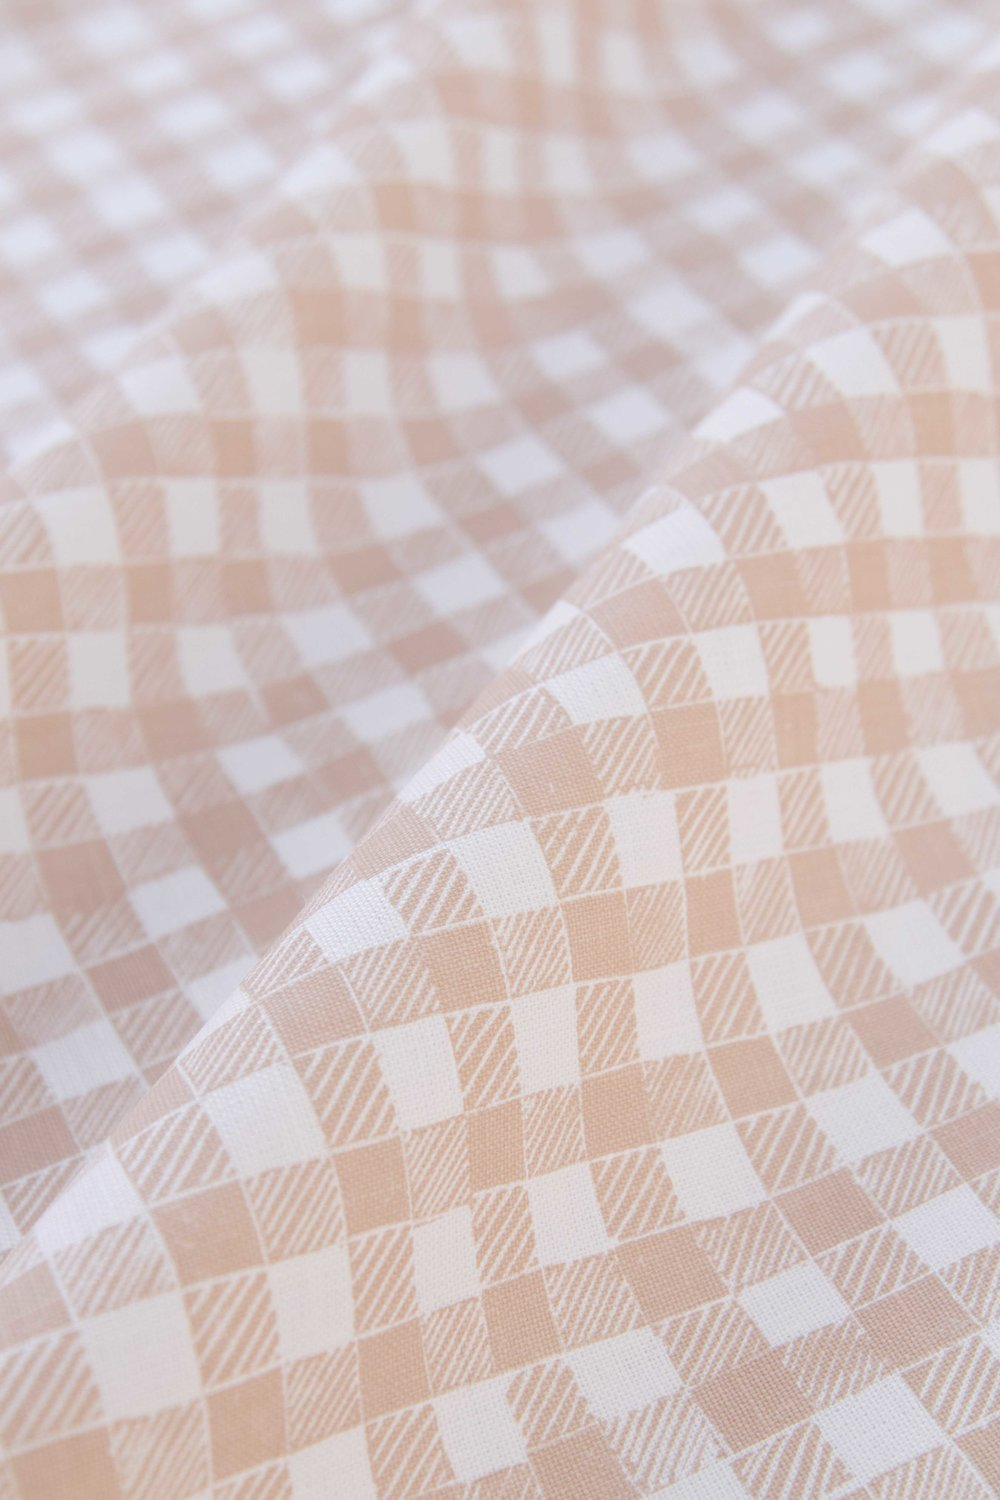 Block Print Gingham in Beige, SL250-04P